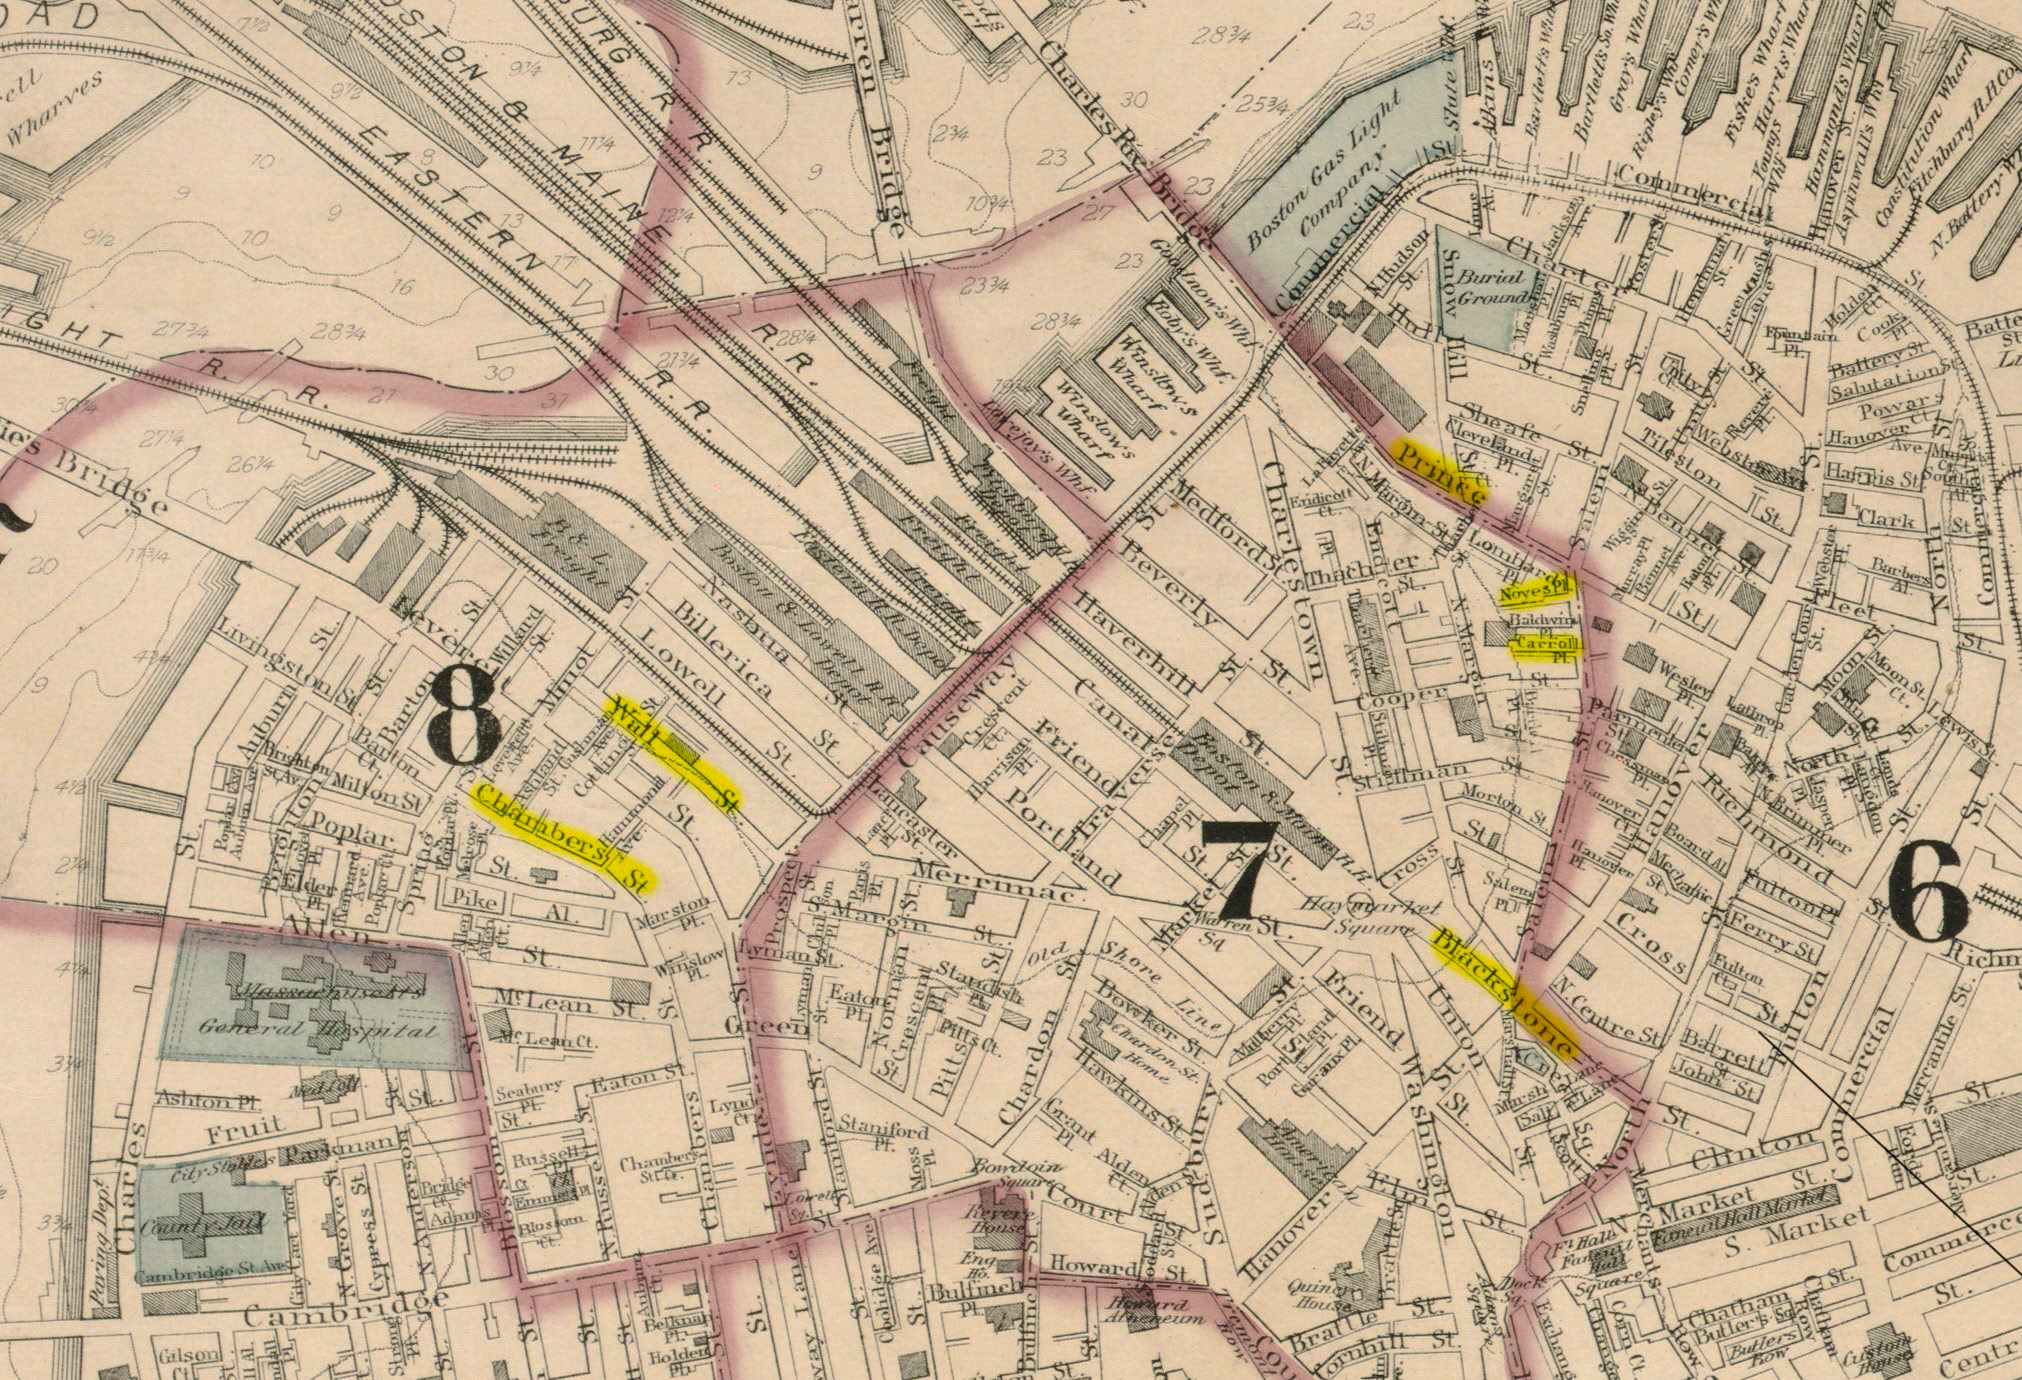 West End of Boston on 1880 Map